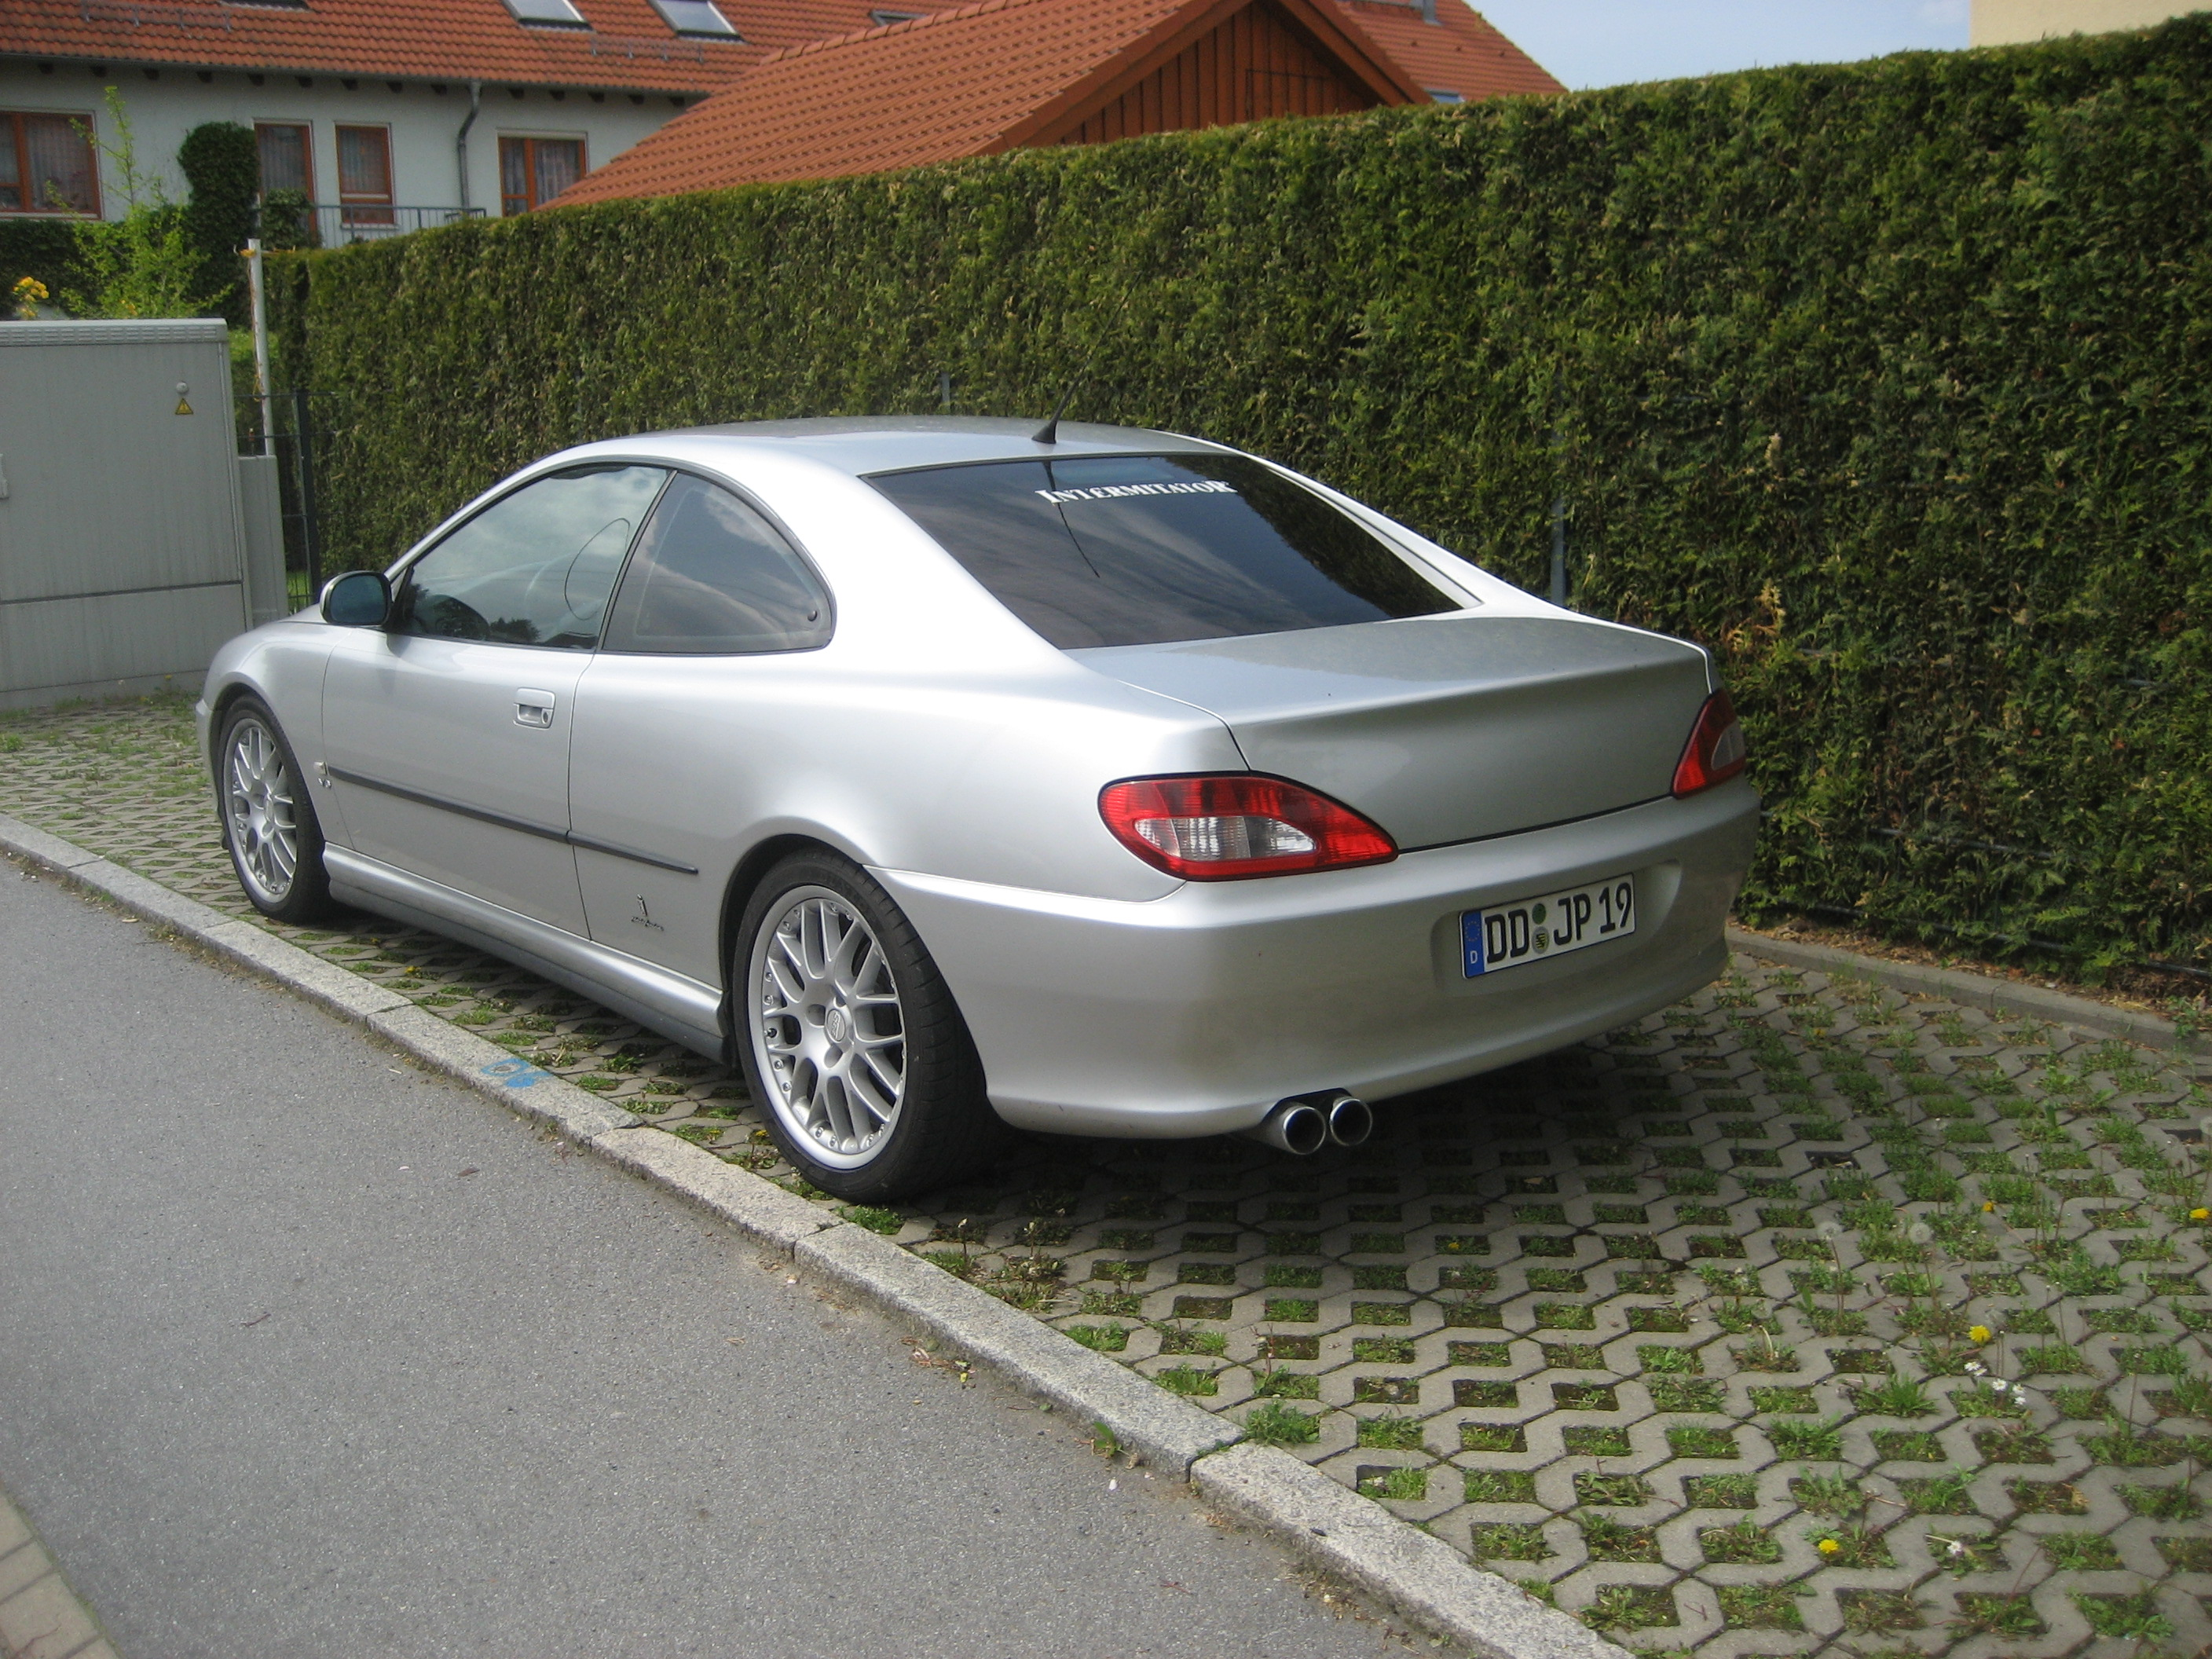 peugeot 406 coupe v6 gas lpg biete. Black Bedroom Furniture Sets. Home Design Ideas